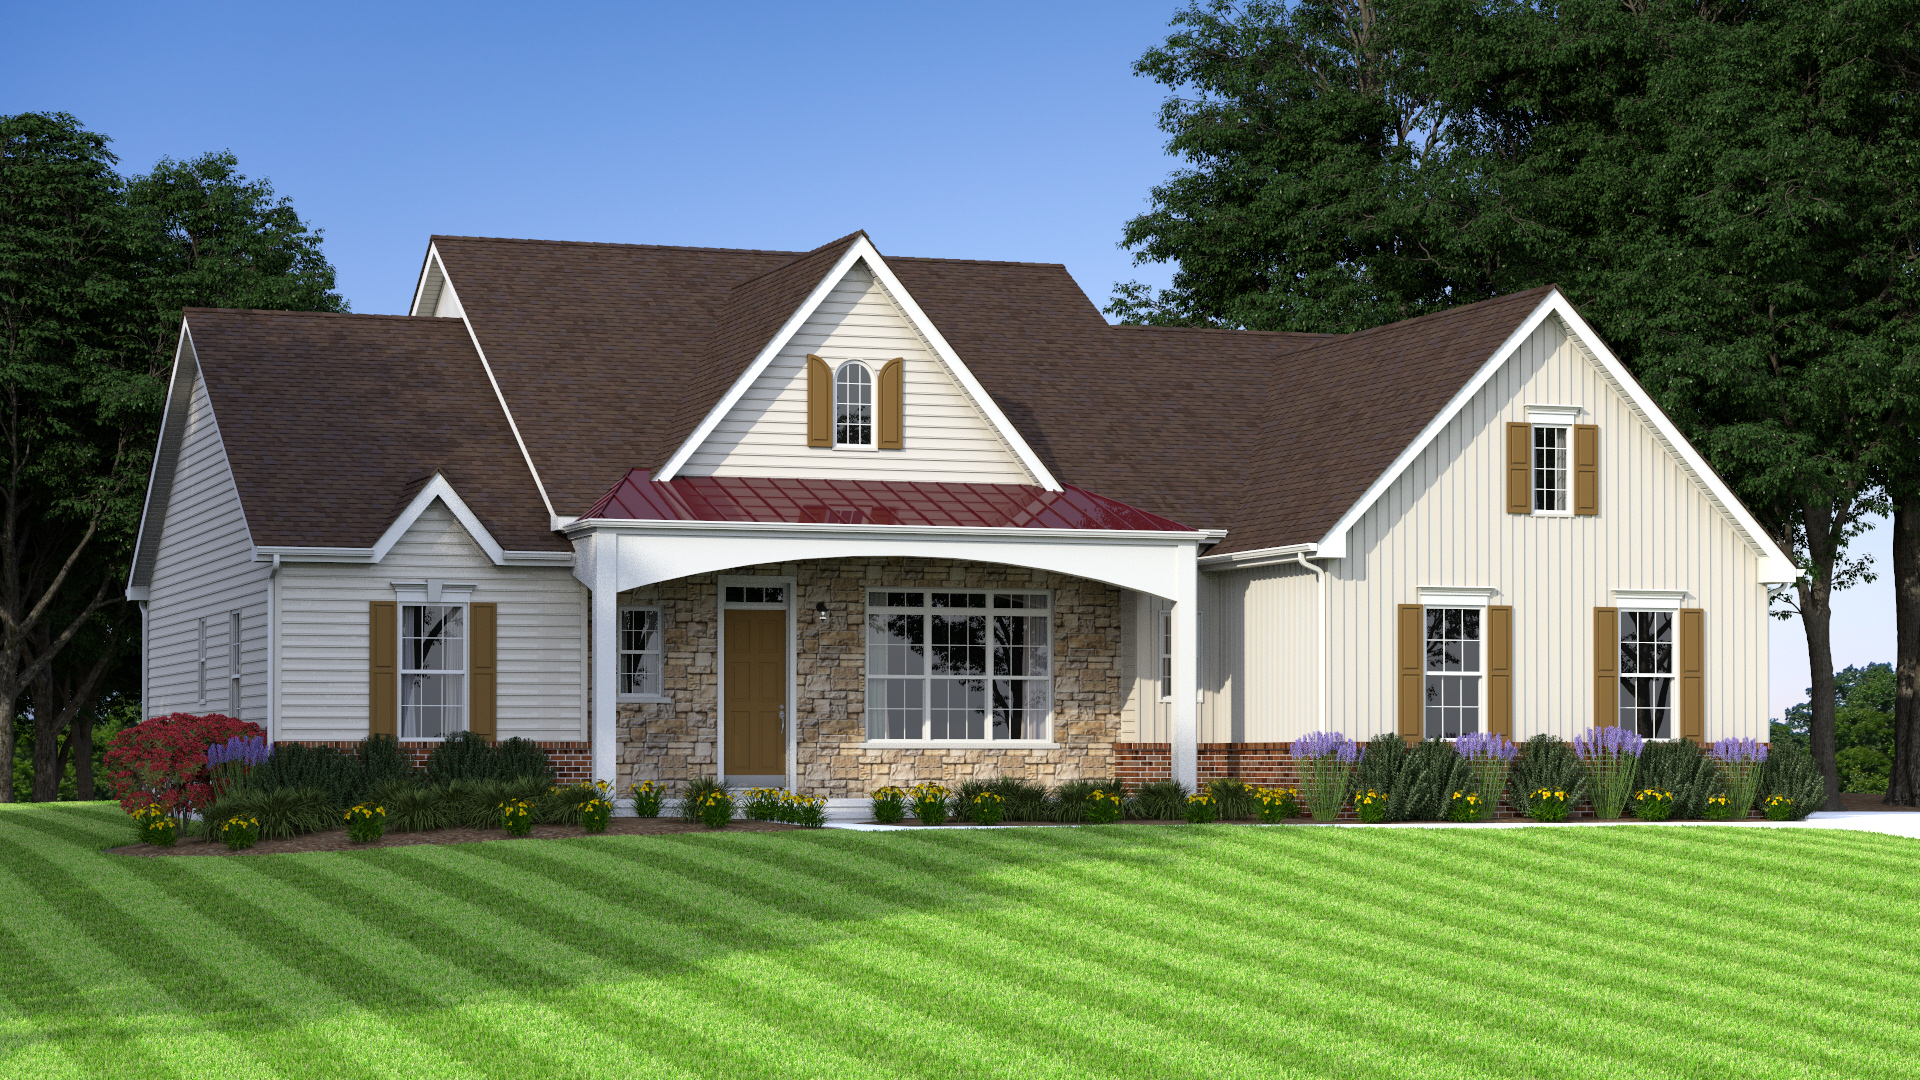 The Jefferson Grand  2,700 sf / 3 br / 2 ba / 2 car garage Starting at $394,990